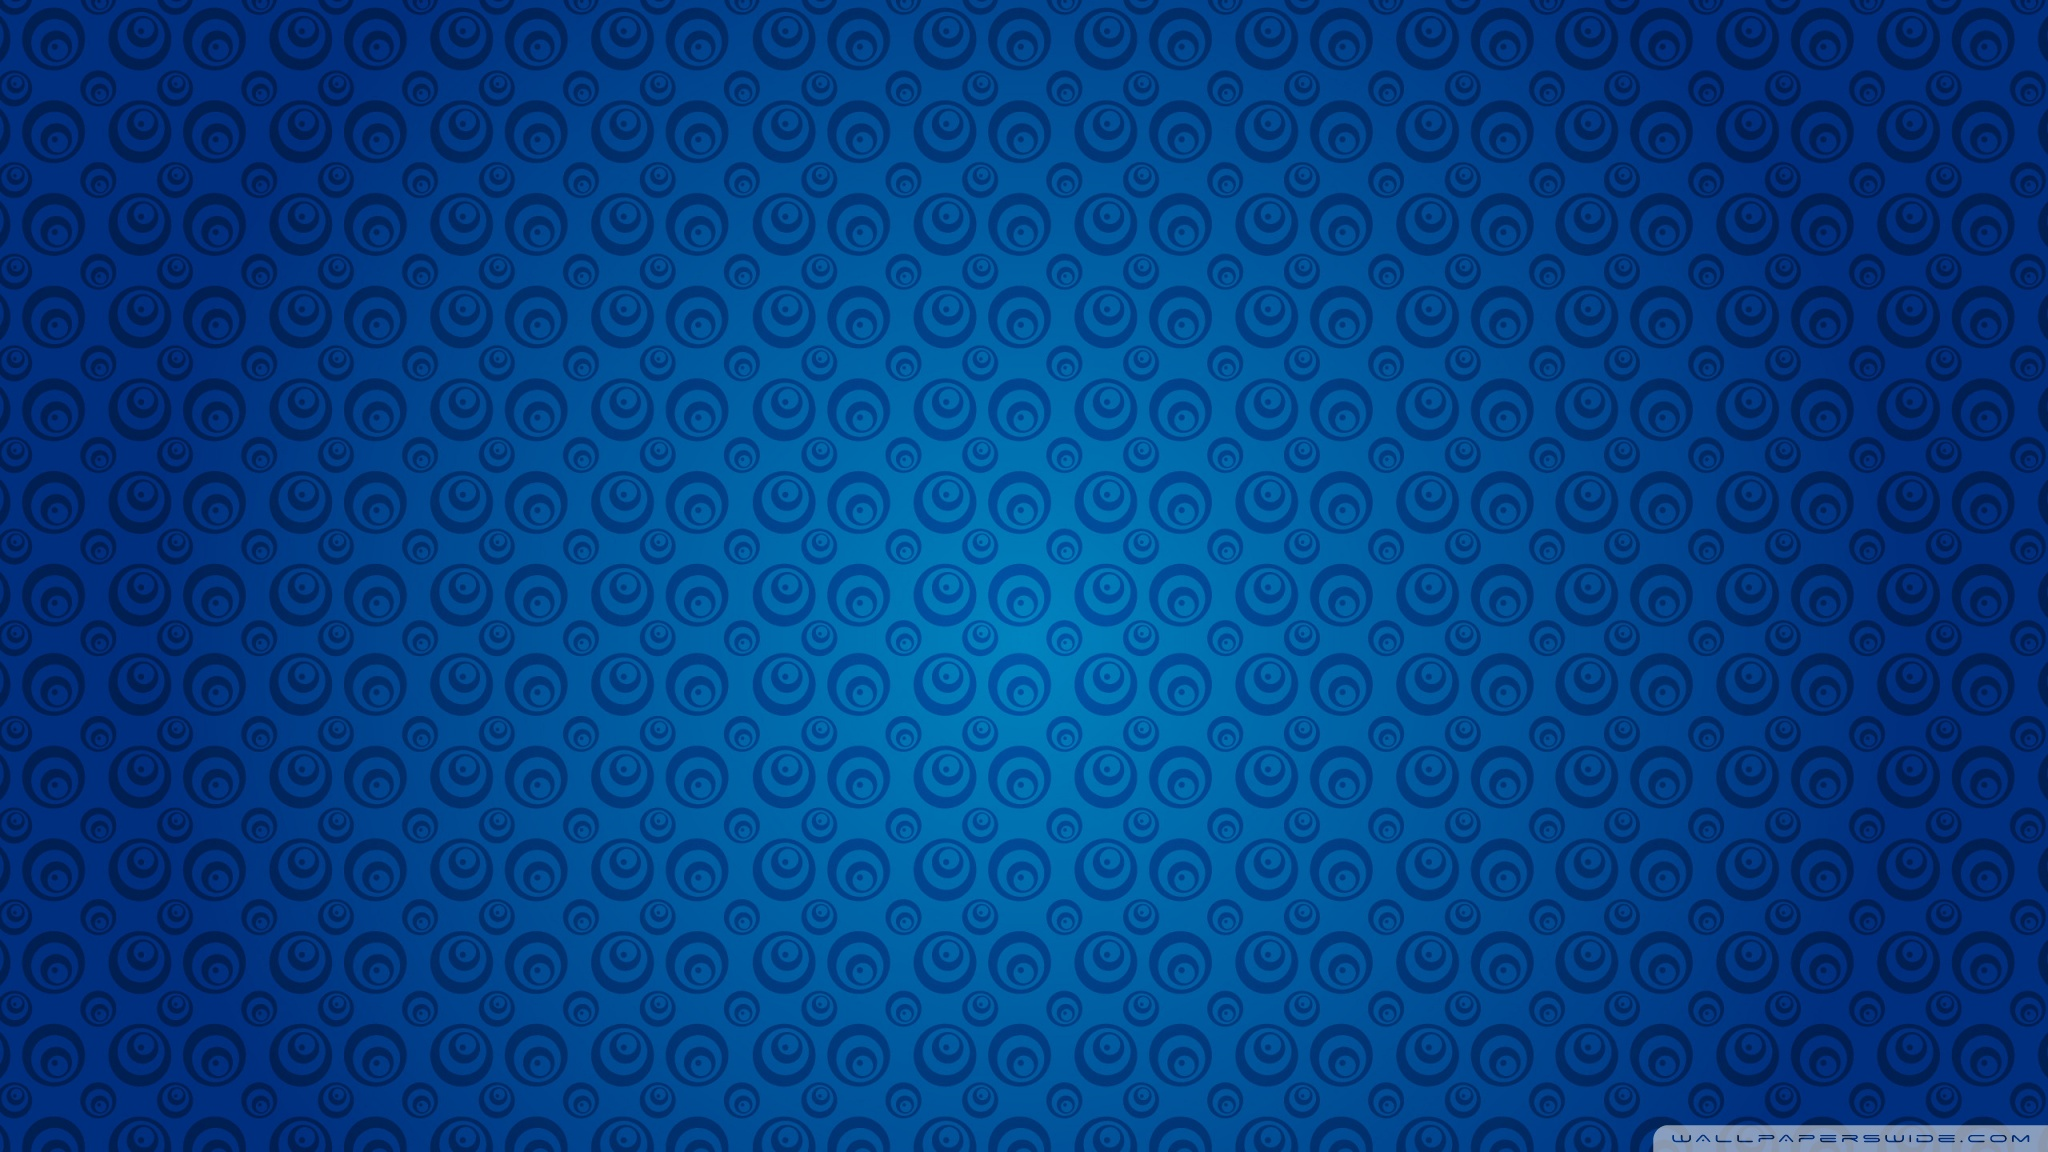 blue retro pattern wallpaper 2048x1152   Azure Production 2048x1152